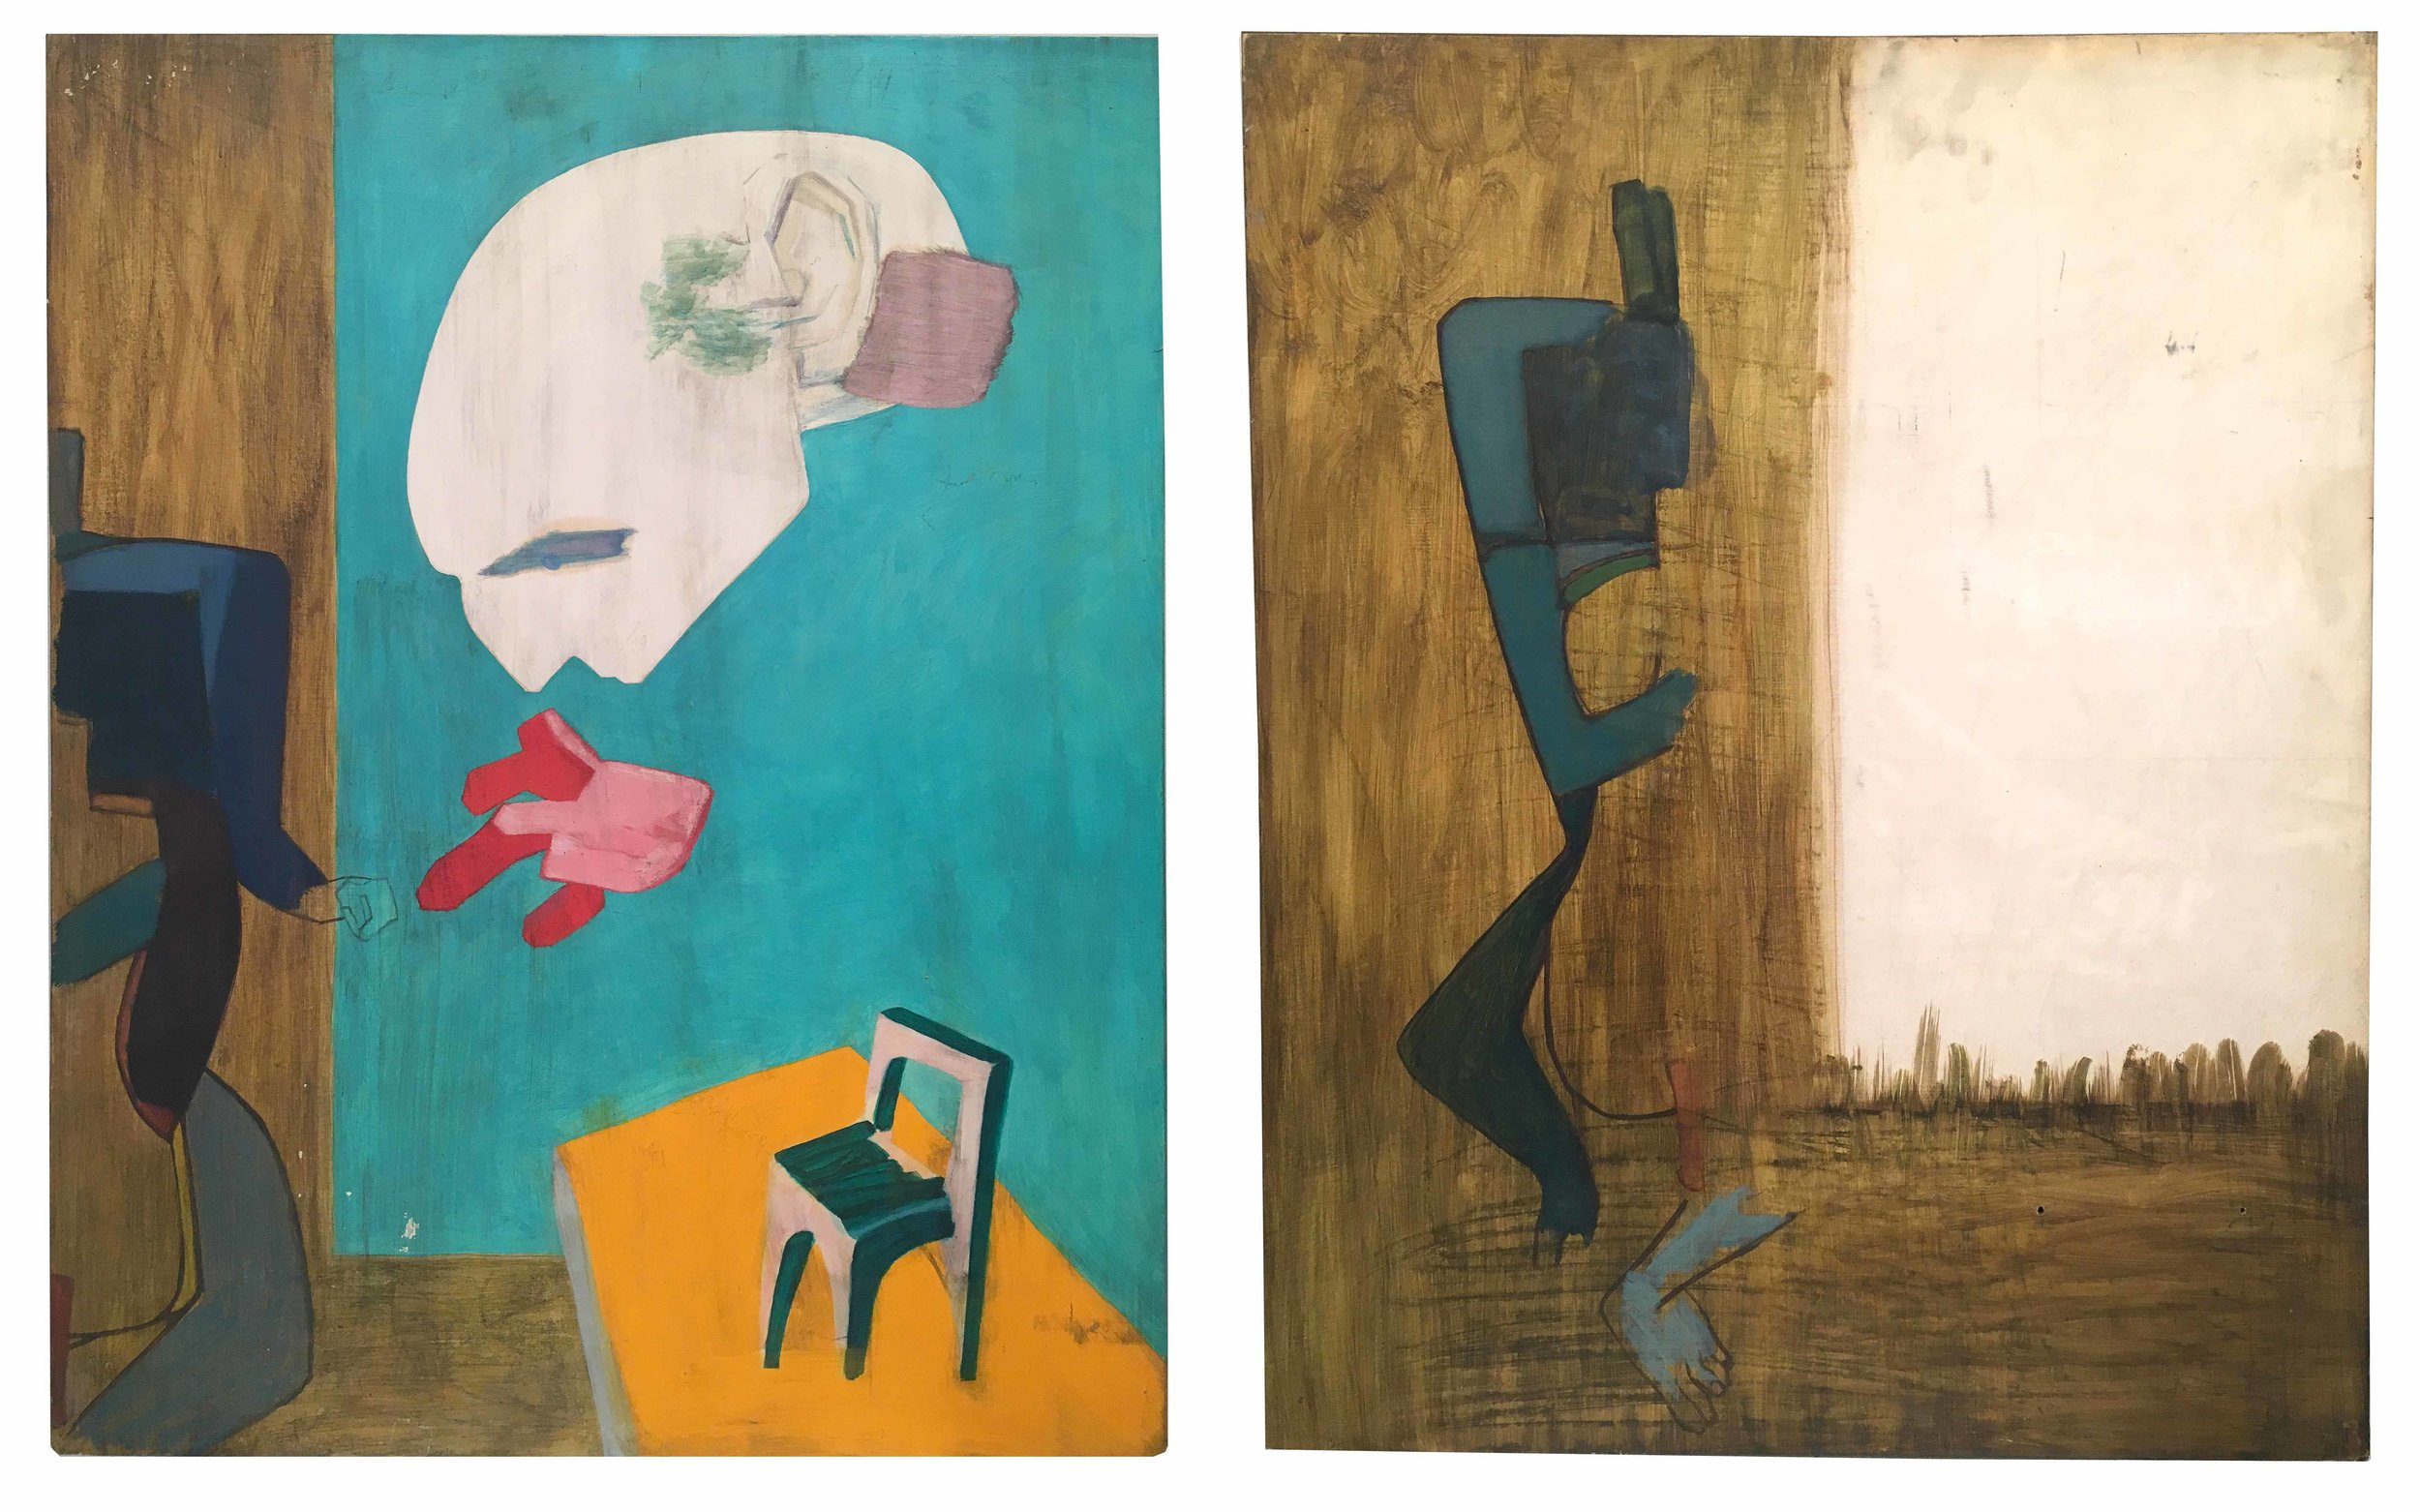 Frederick Kiesler  (1890-1965)  Portrait Galaxy of Charcot , 1949 Tempera and oil on paper mounted on wood Two panels mounted together in one frame: Panel A: 28 9/16 x 22 7/16 inches (72.5 x 57 cm) Panel B: 28 1/2 x 22 7/16 inches (72.4 x 57 cm) Collection of The Estate of Frederick Kiesler, New York